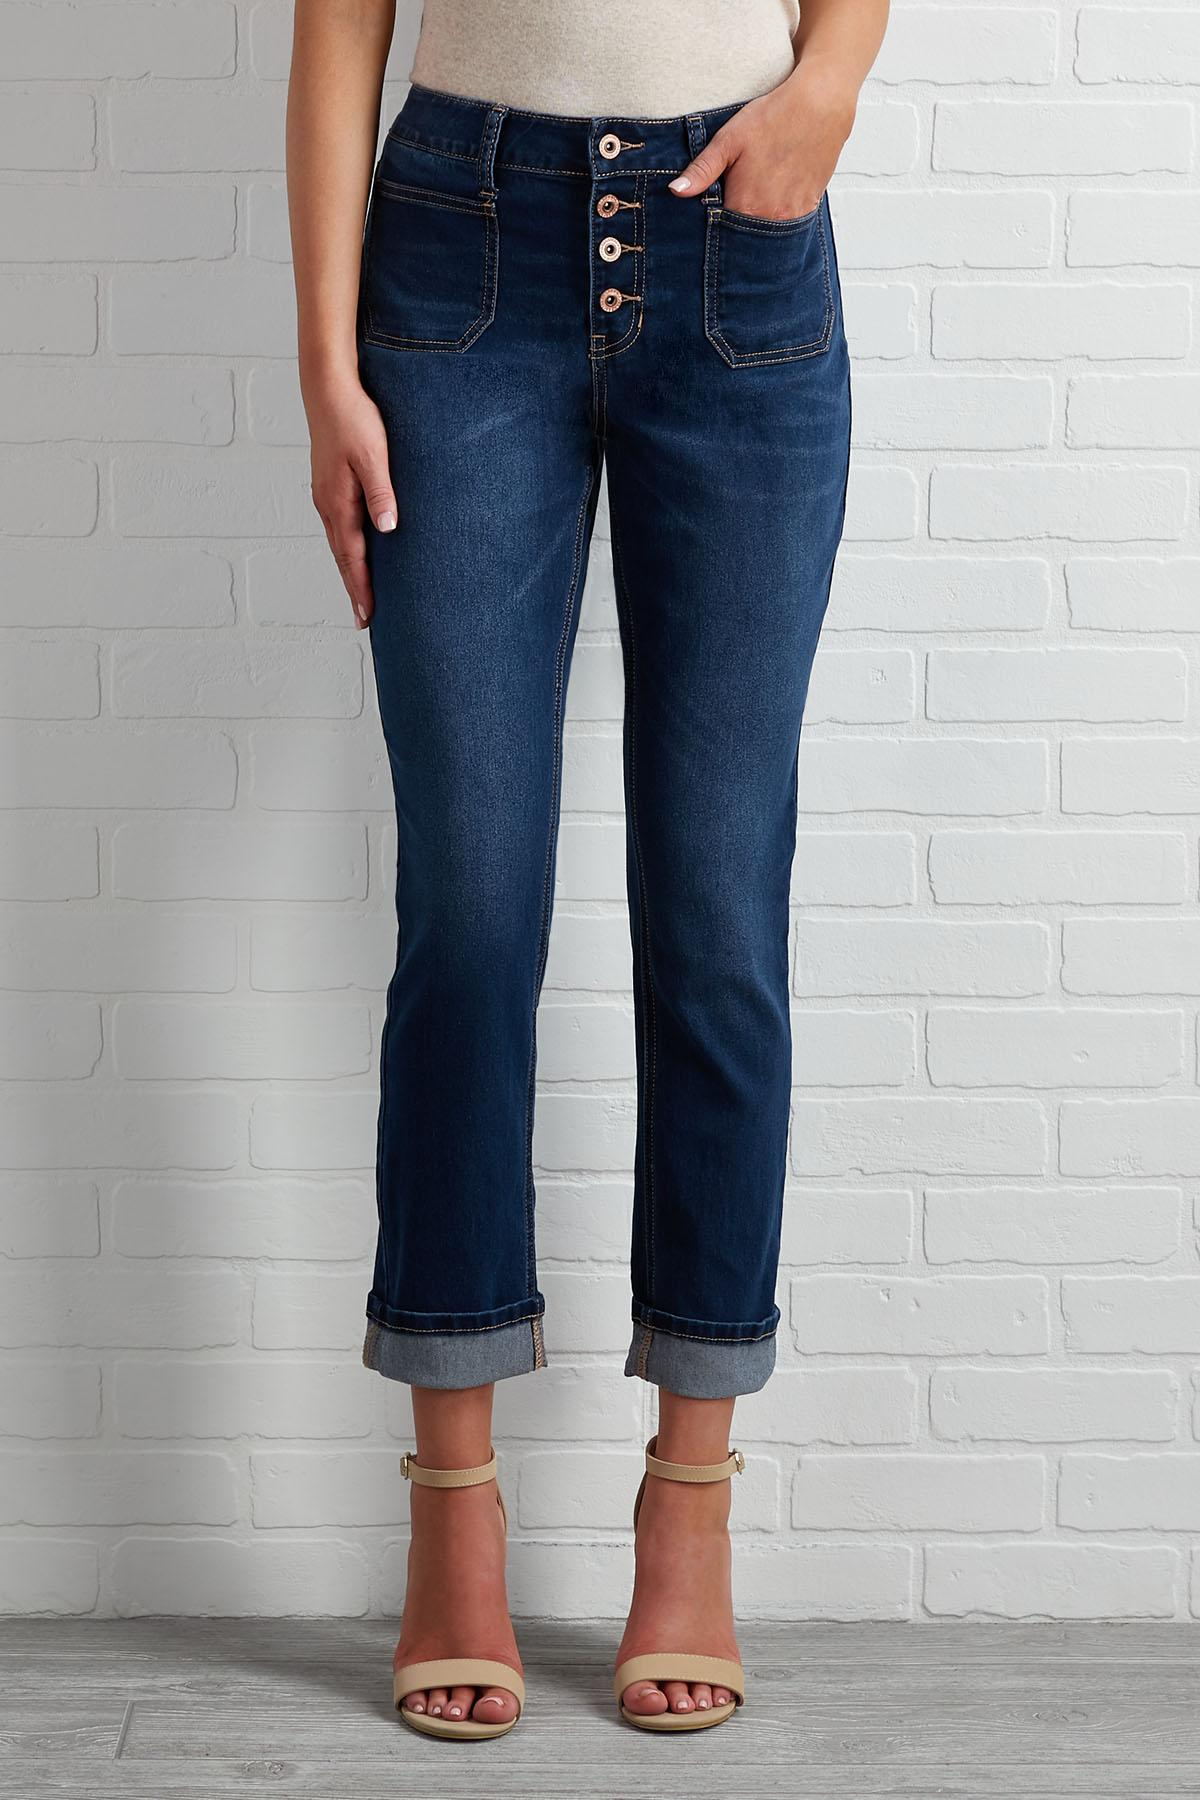 Ready In A Snap Jeans